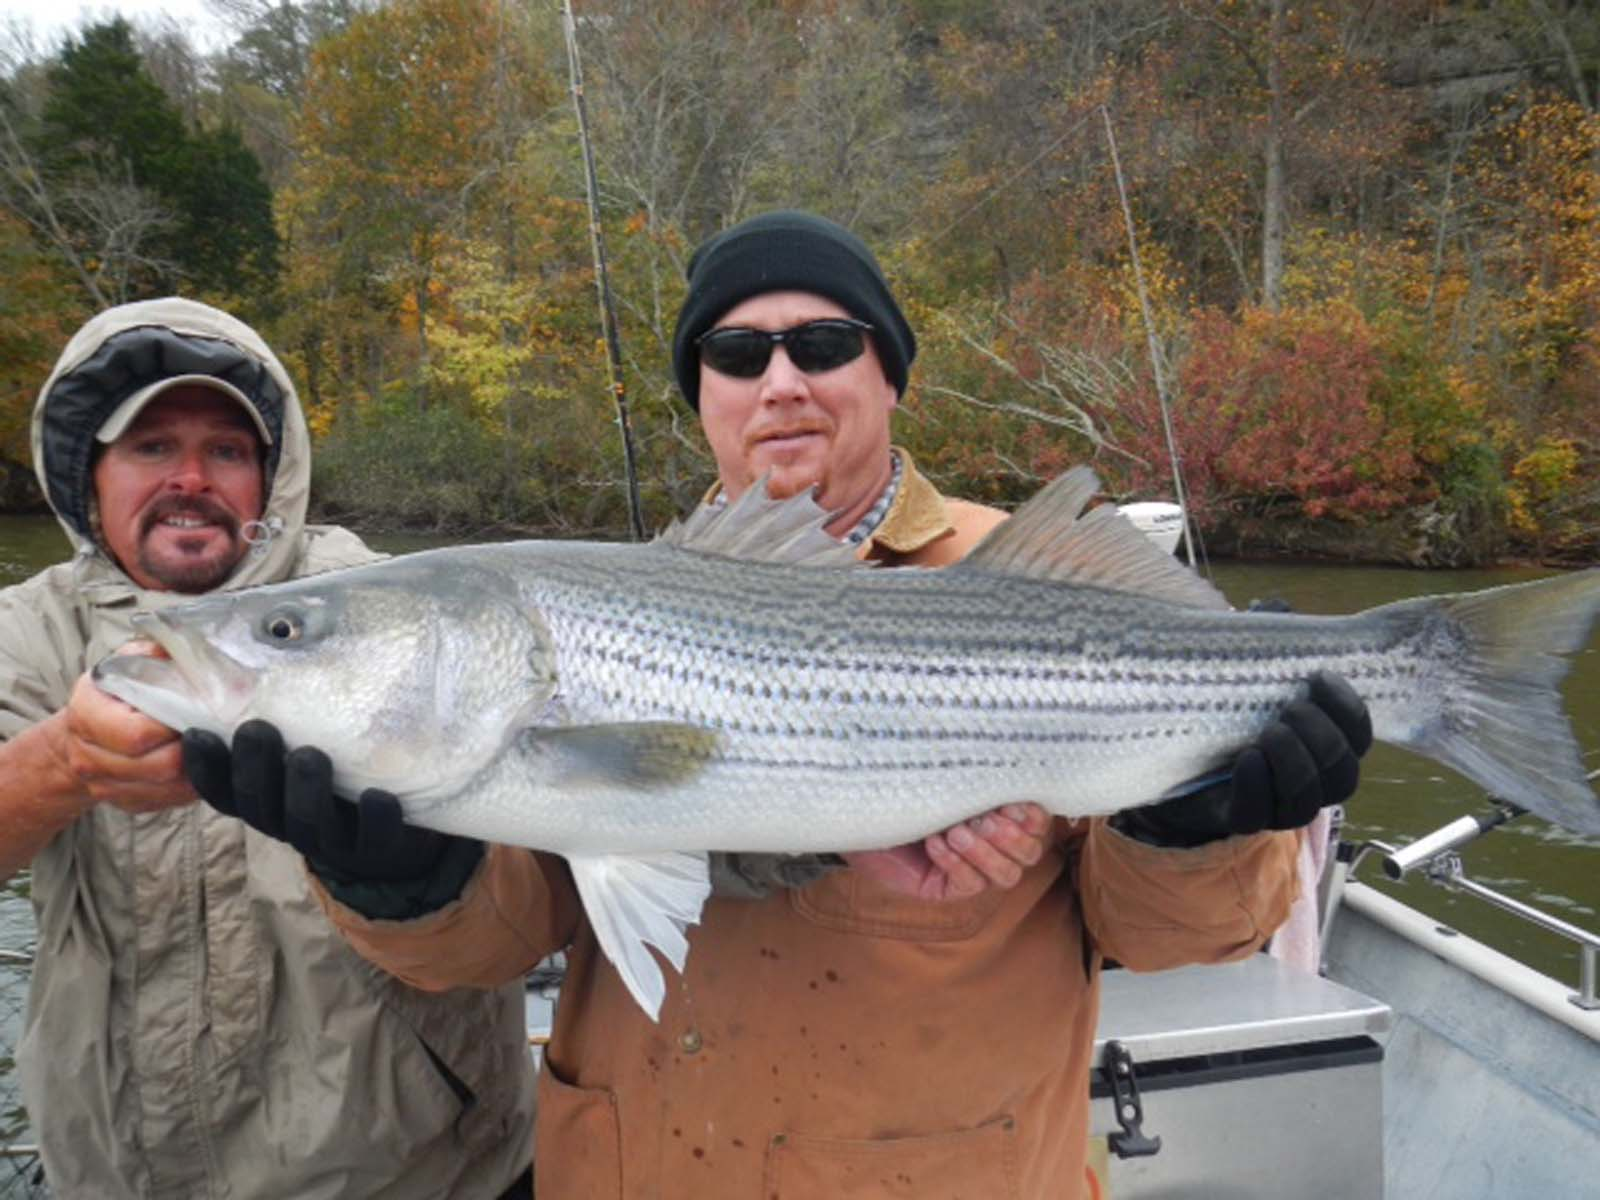 Cumberland river archives nashville fishing charters for Cumberland river fishing report